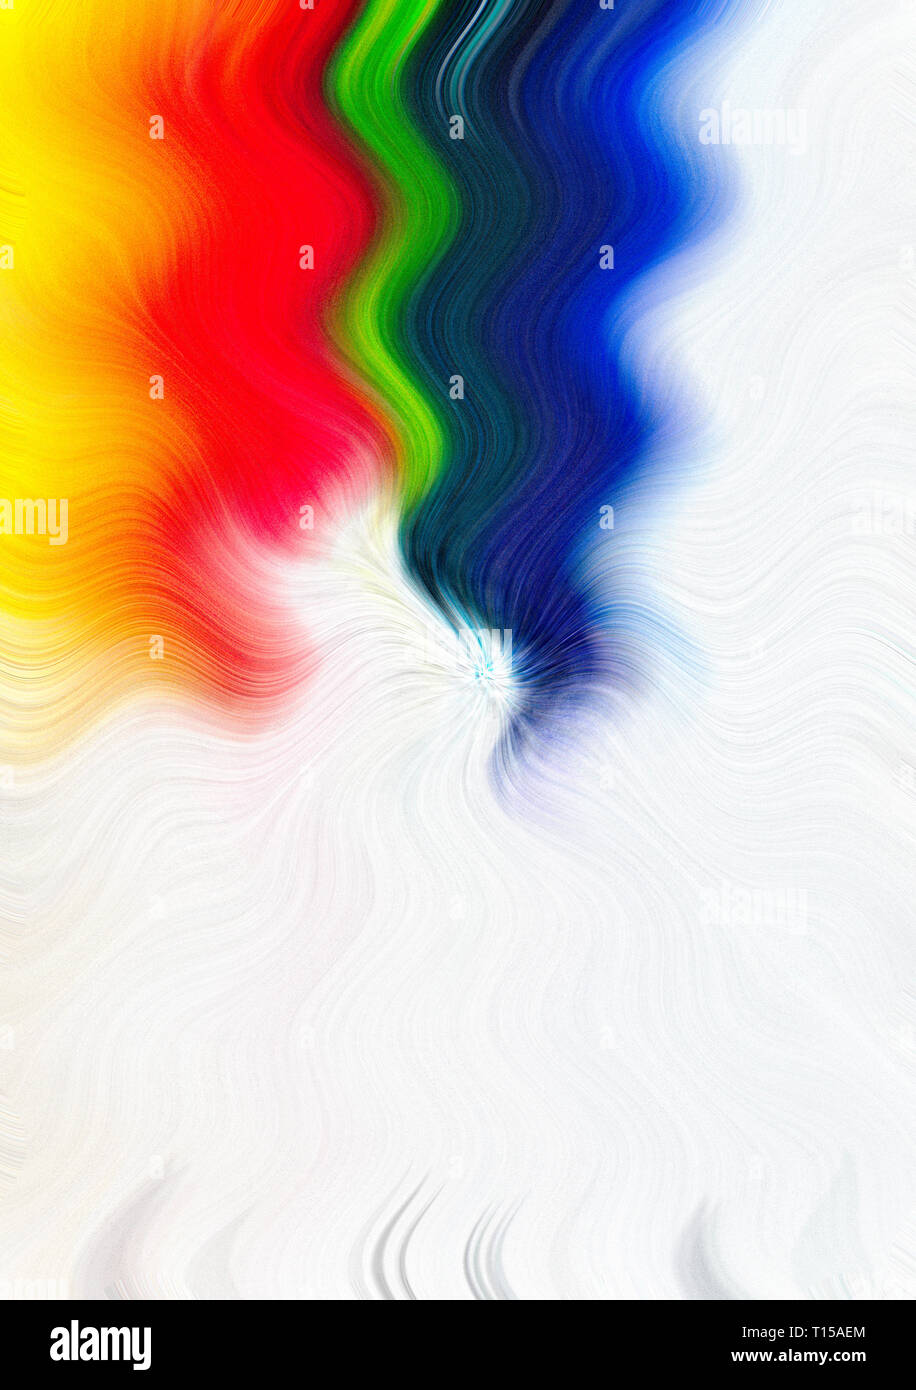 Rainbow colored background with a watercolor vibe. Plenty of room for text. Great for advertising, greeting cards, wallpaper, backgrounds. - Stock Image